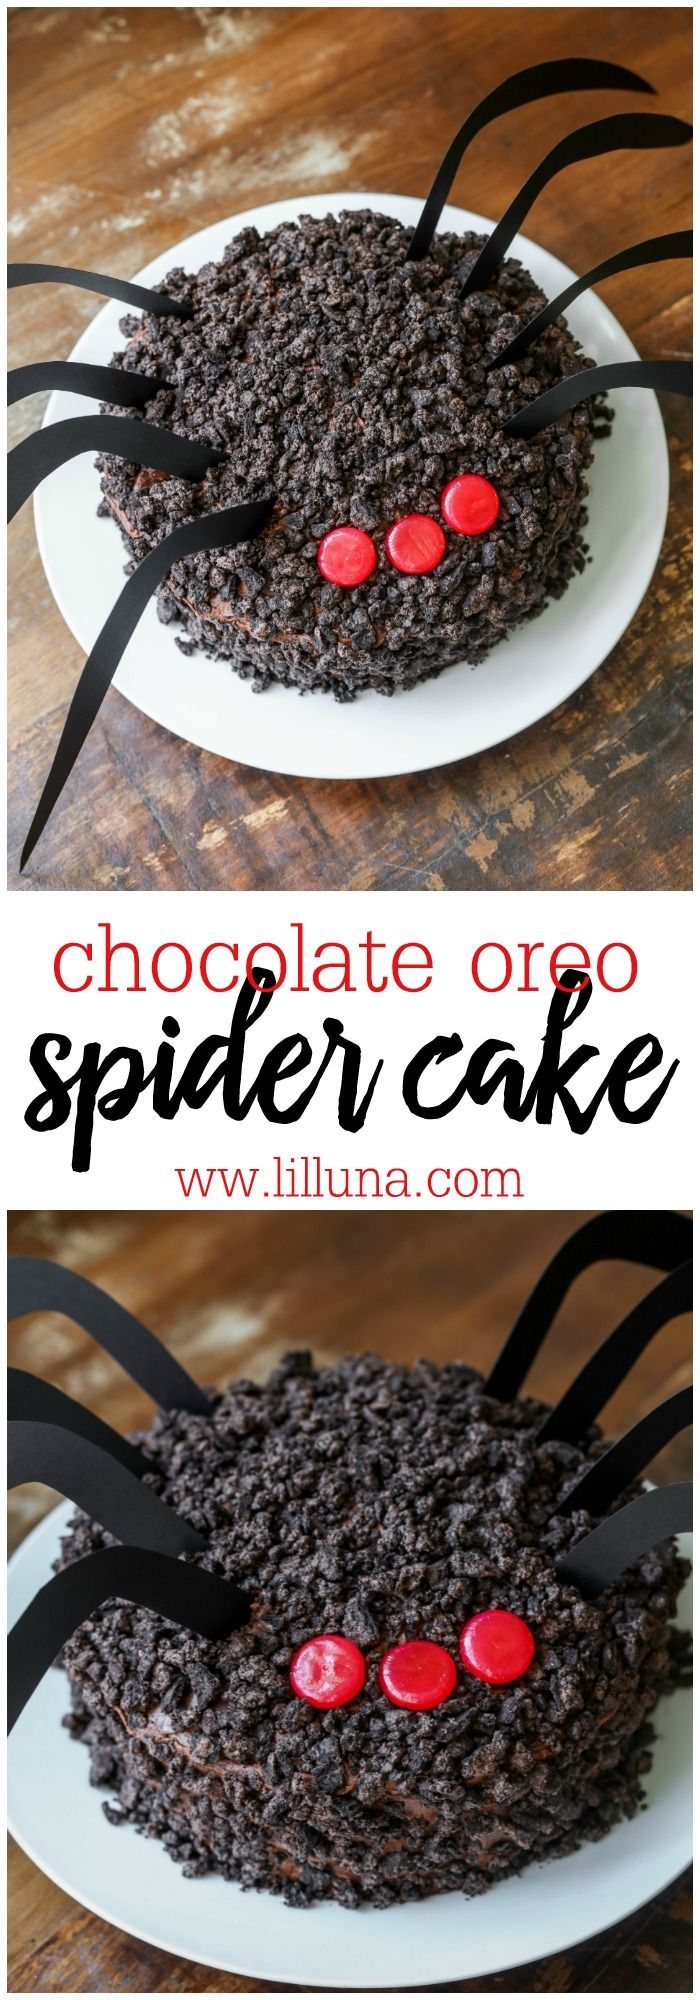 Chocolate Oreo Spider Cake - a delicious chocolate cake topped with homemade…